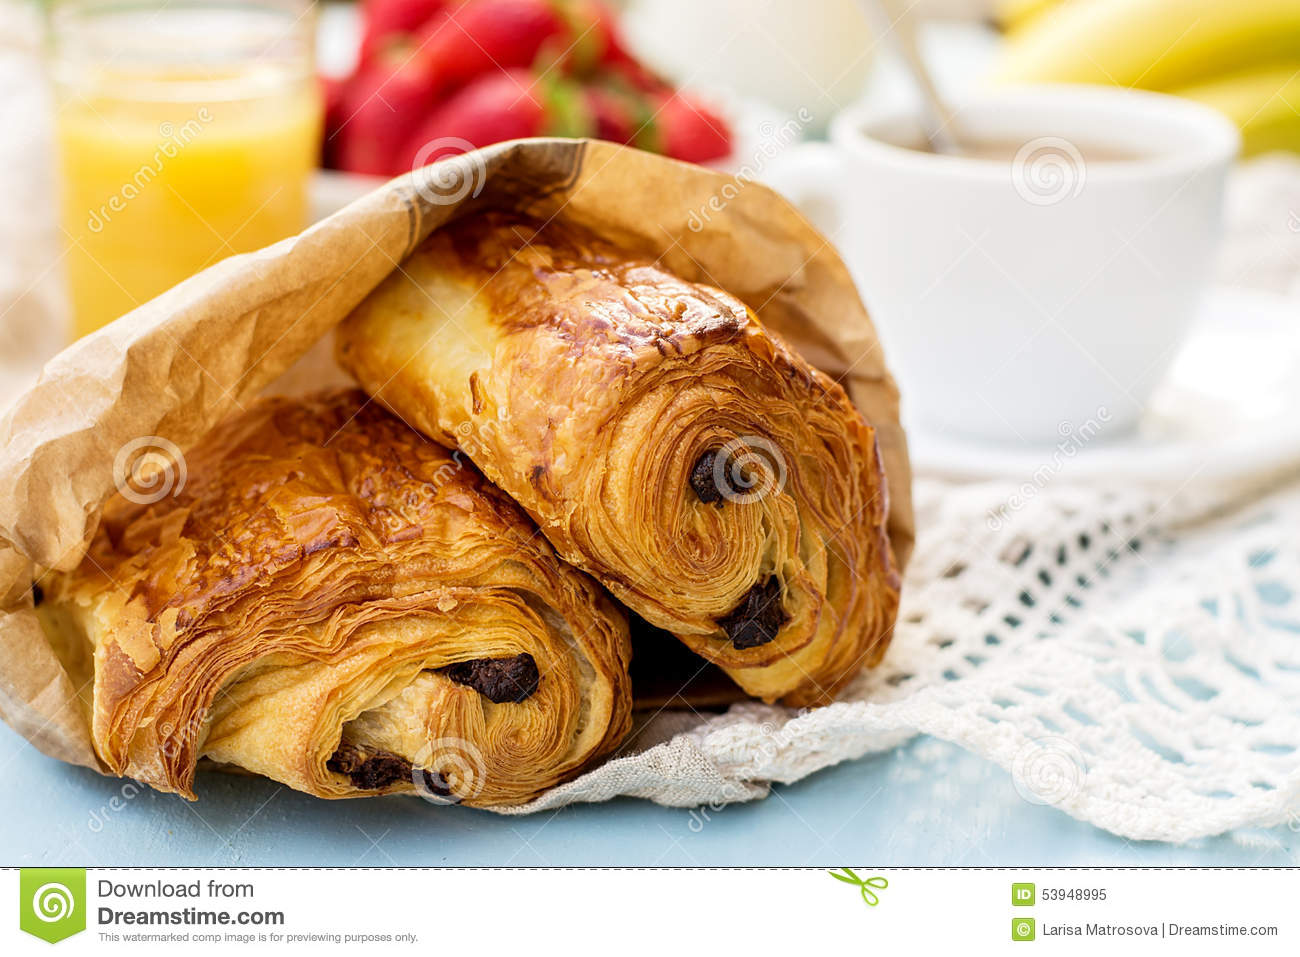 French viennoiserie pain au chocolat for breakfast